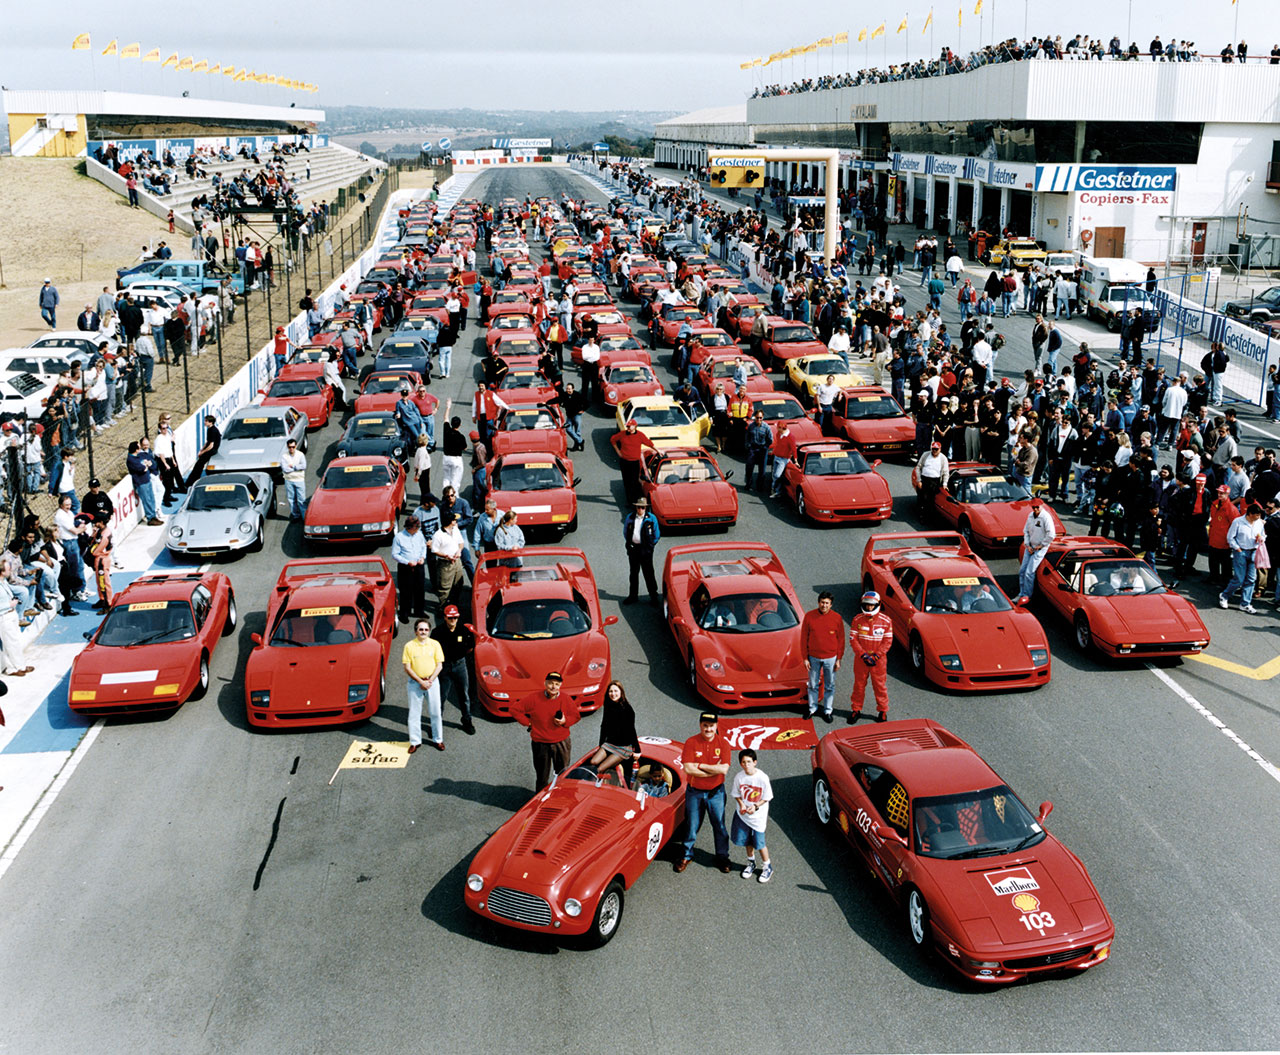 Rally of the South African Ferrari Clubs on the Kyalami Circuit for the 50th Anniversary Celebration, 1997. Photo courtesy of Ferrari.